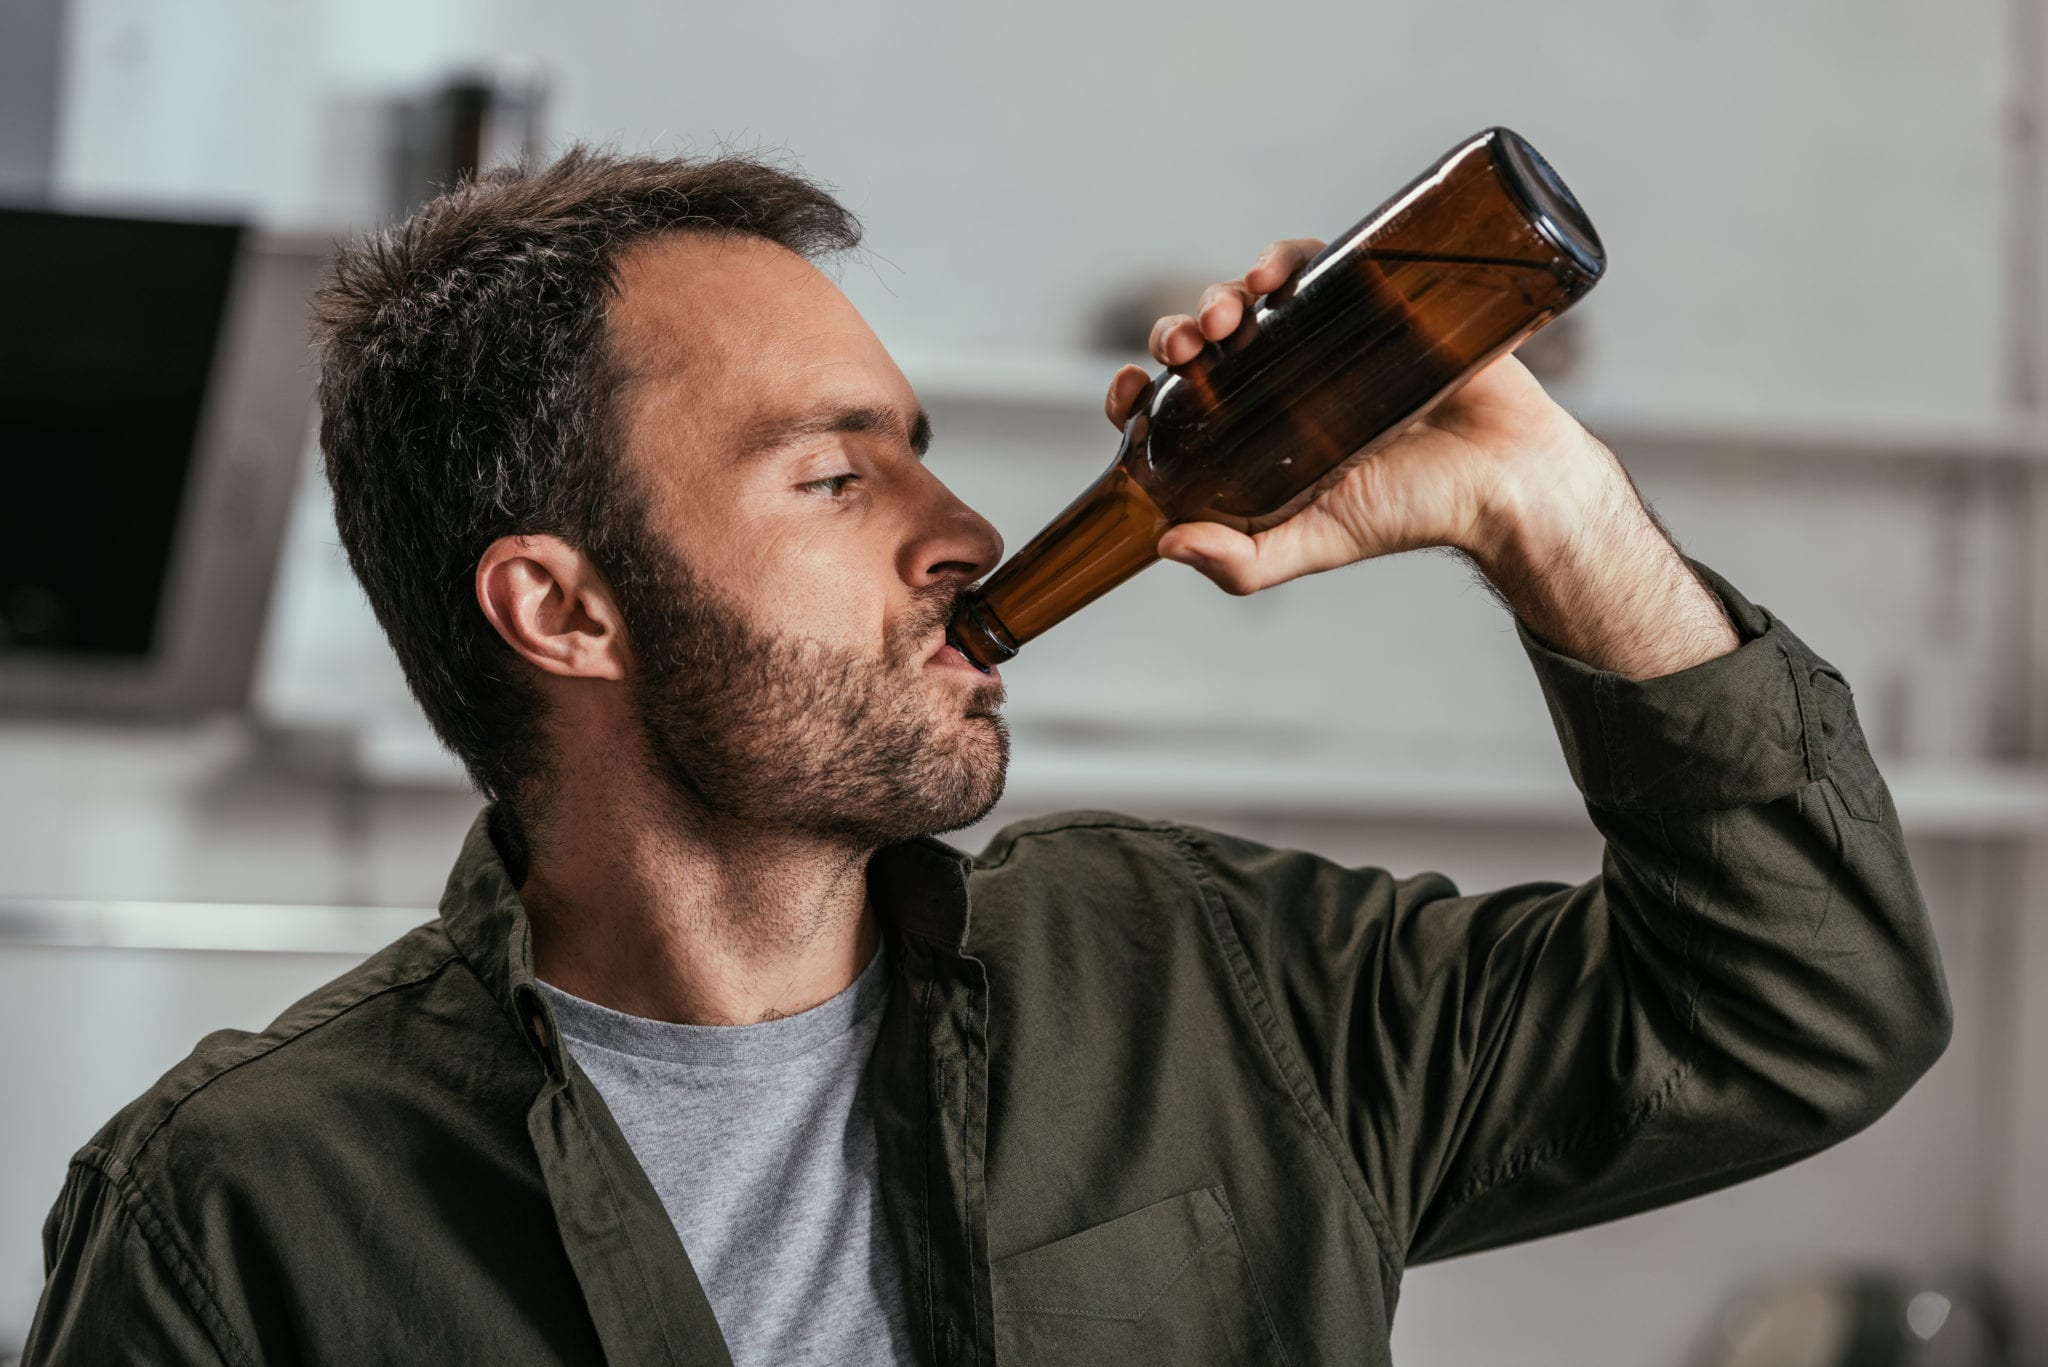 Canadians drinking, smoking 15% more during Covid-19: Red Cross